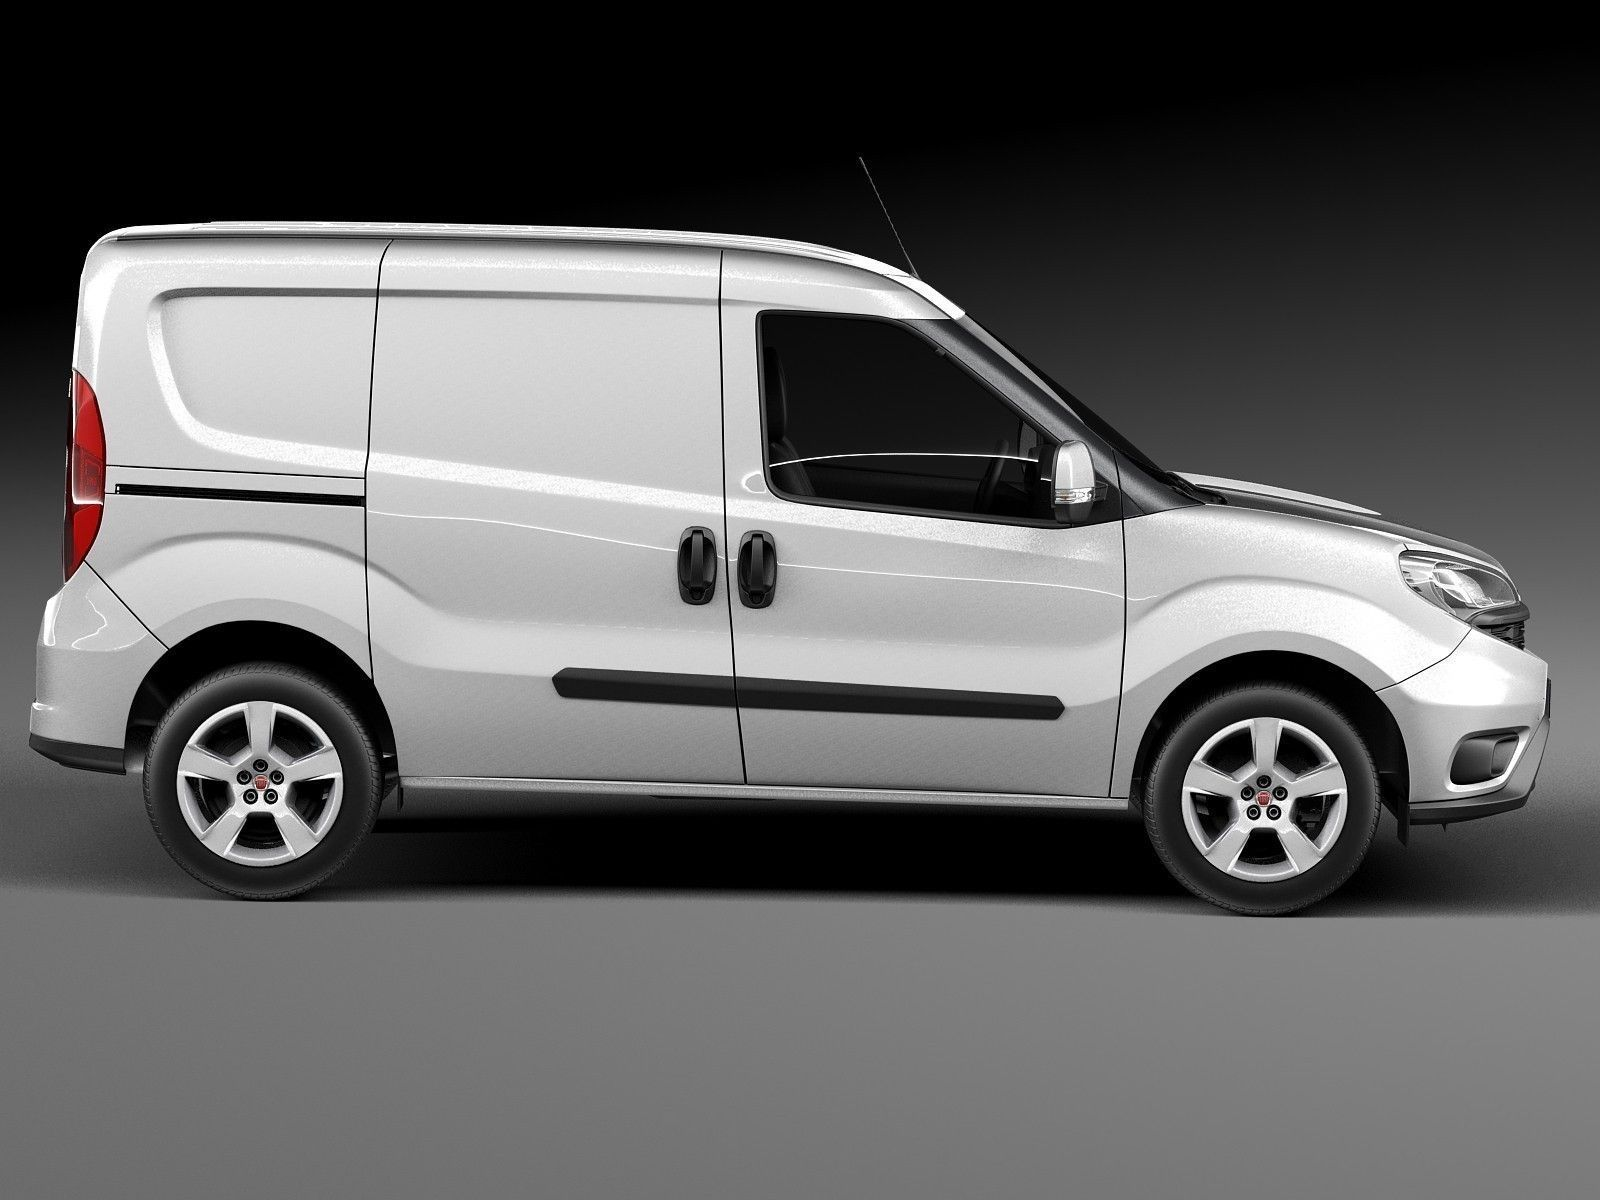 fiat doblo cargo 2015 3d model max obj 3ds fbx c4d. Black Bedroom Furniture Sets. Home Design Ideas